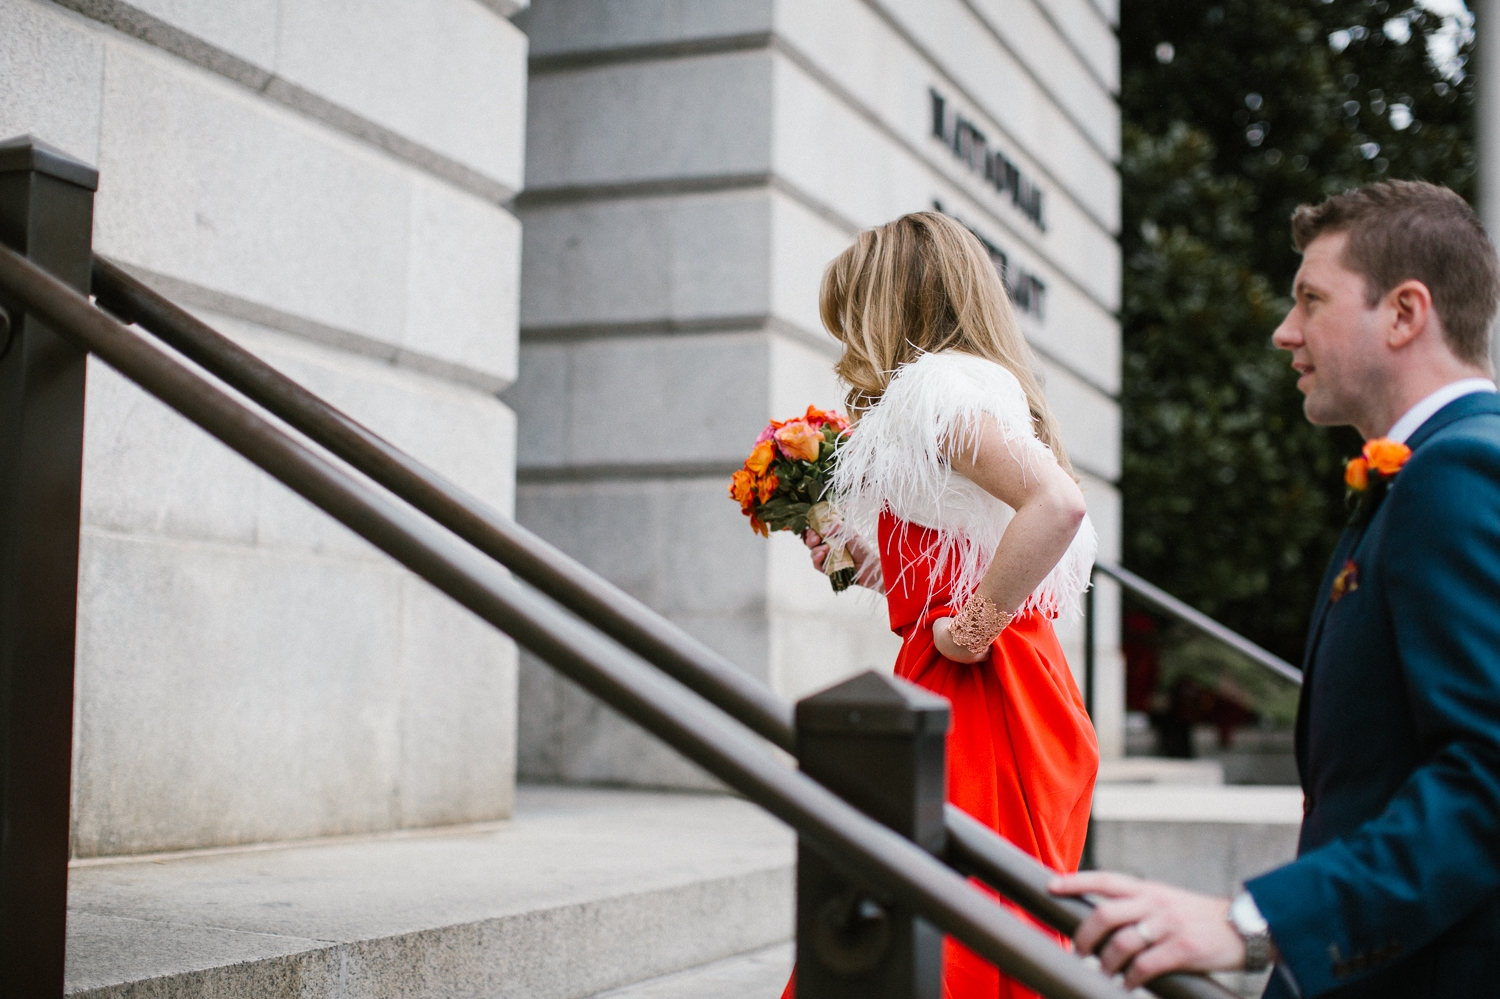 washington-dc-portrait-gallery-elopement-wedding-photography 36.jpg